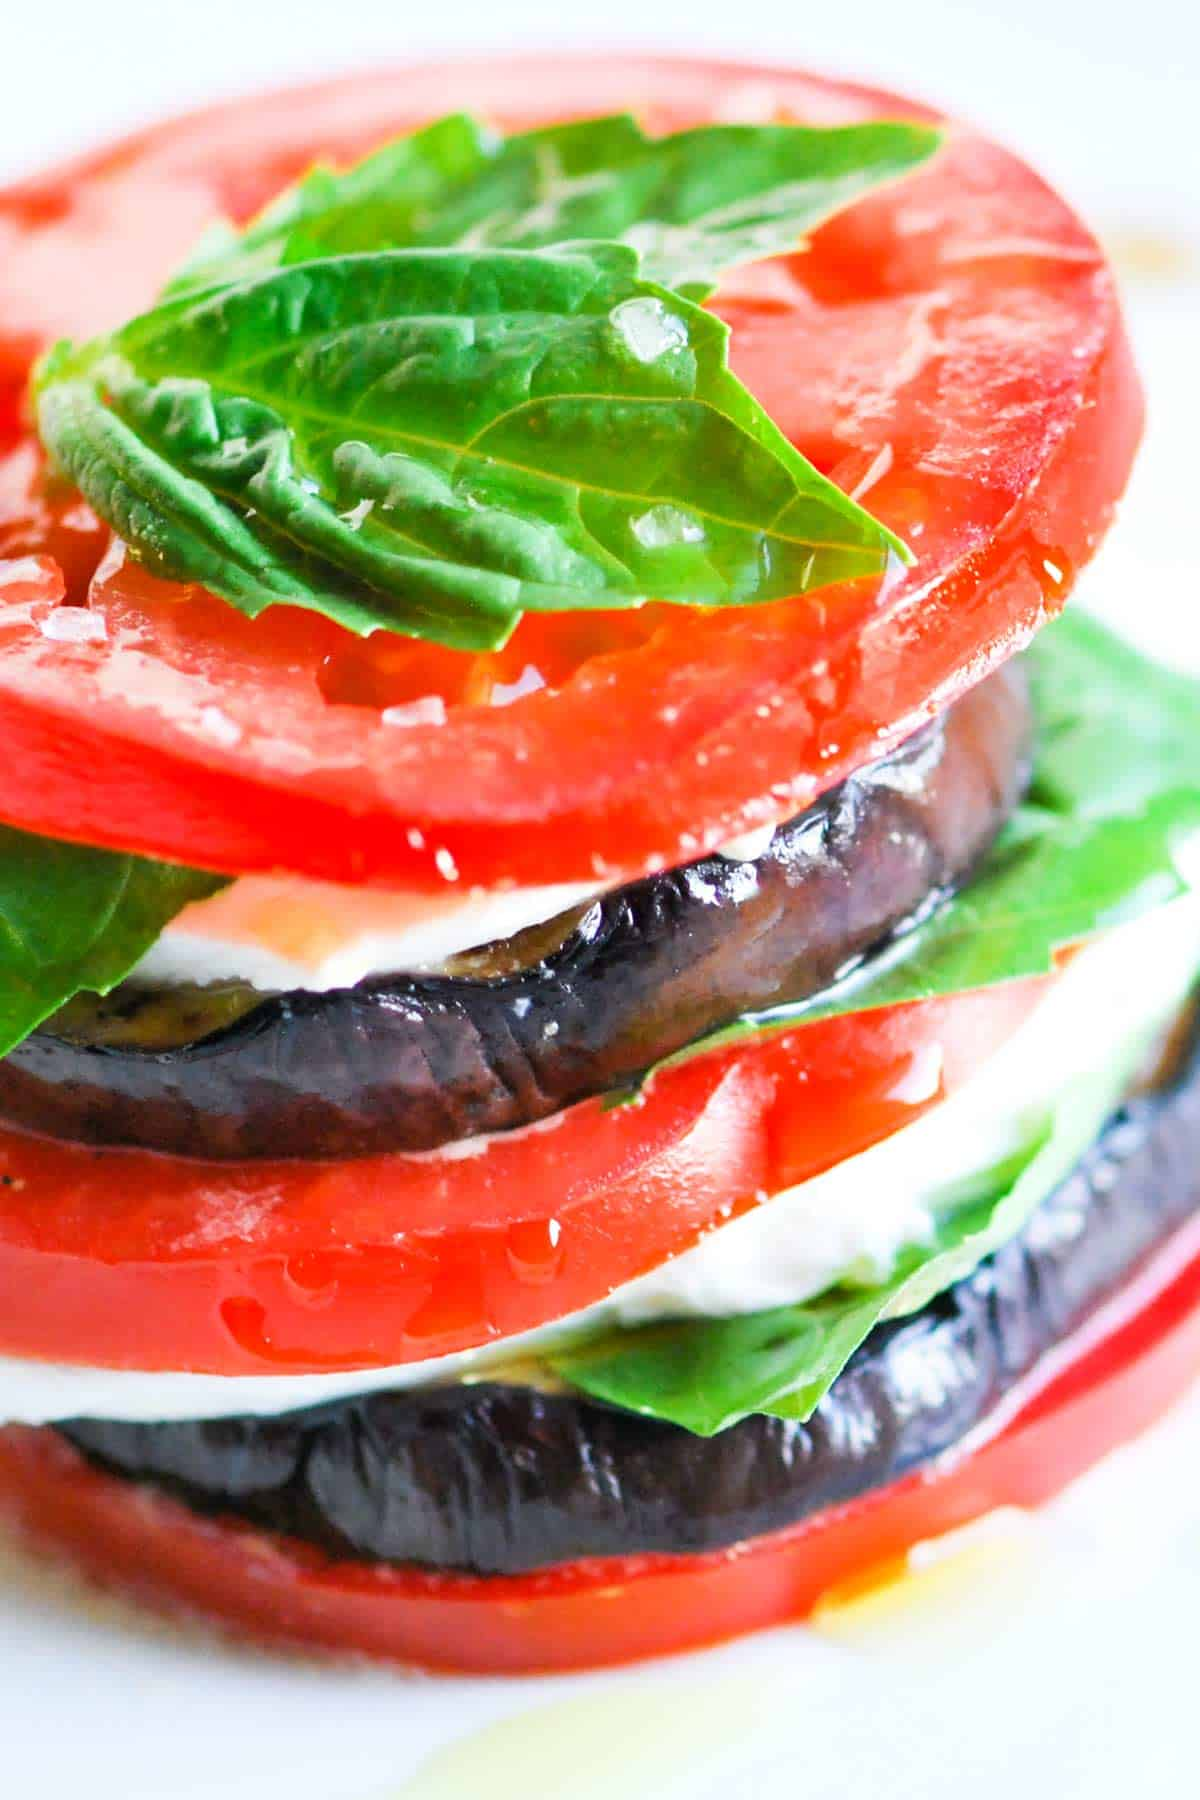 How to Make a Stacked Salad with Eggplant, Tomato and Mozzarella